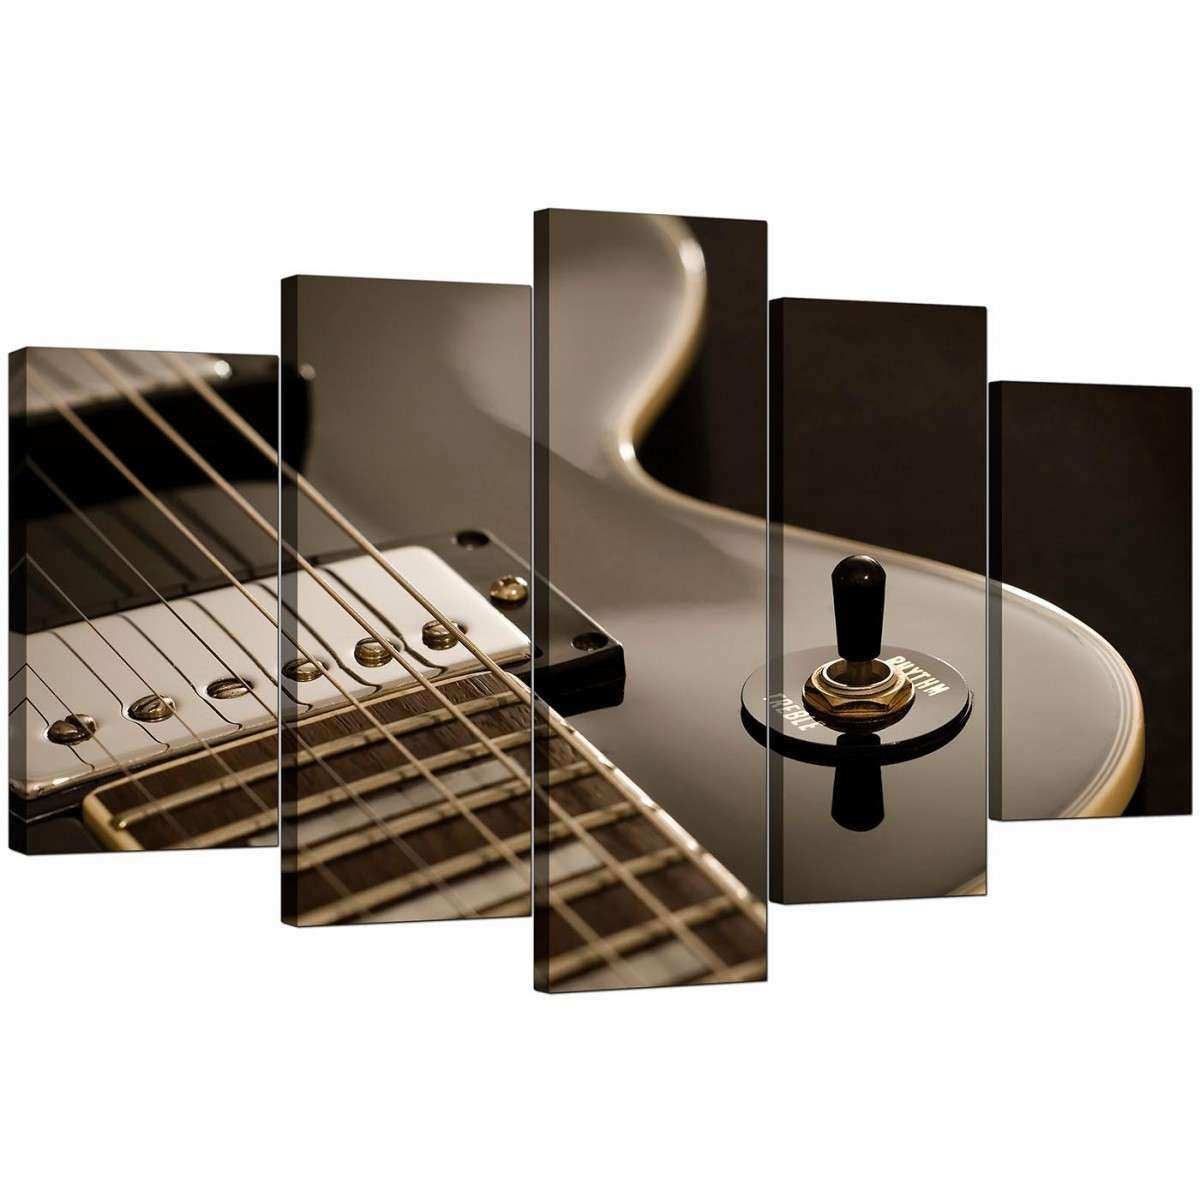 Extra Guitar Canvas Prints UK 5 Piece in Black & White